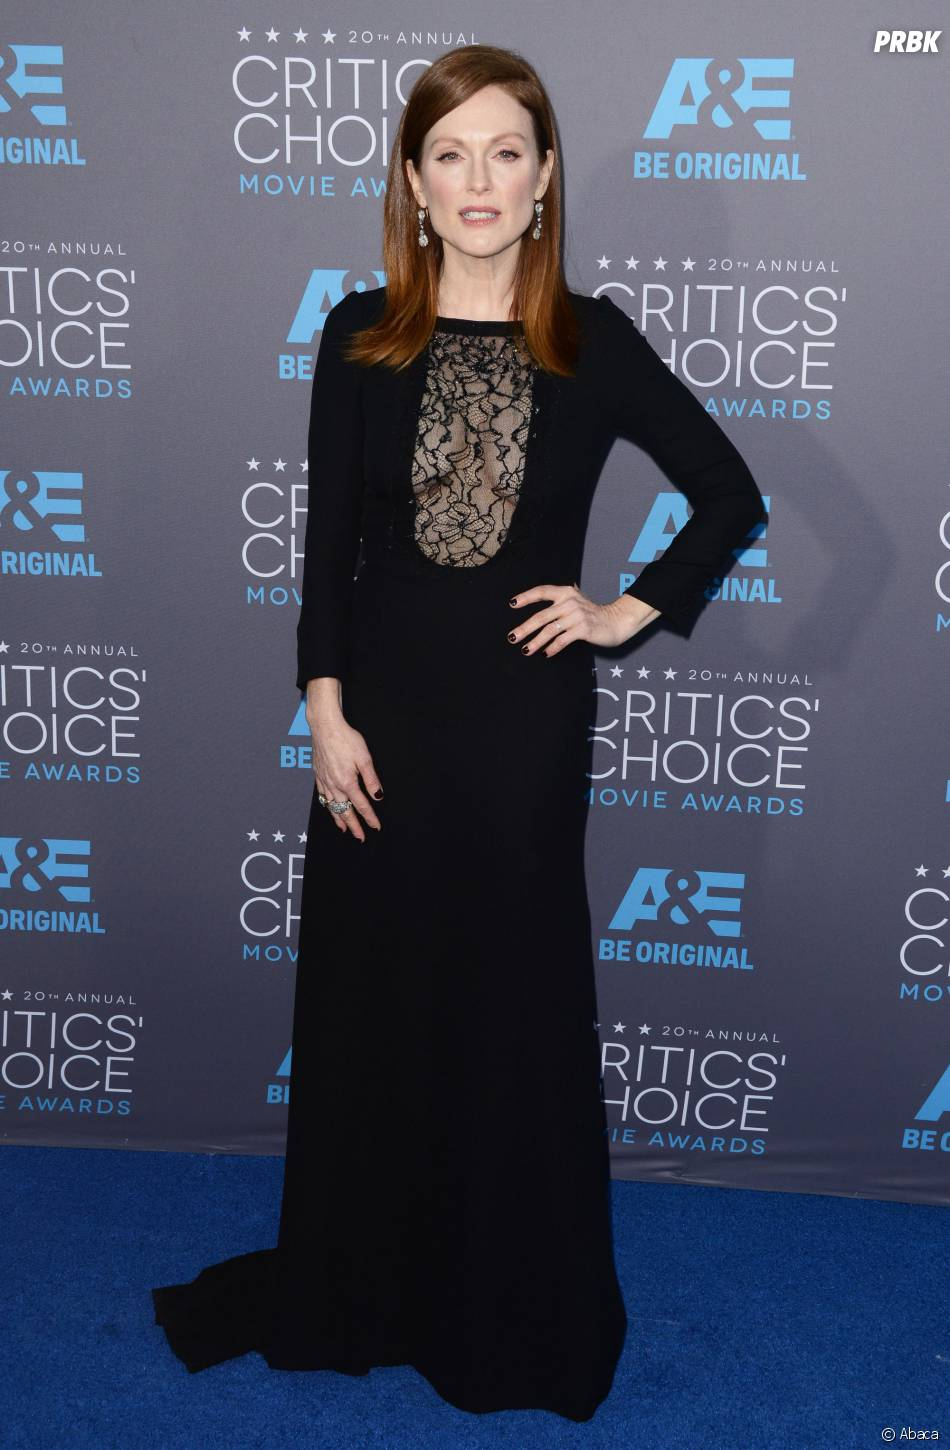 Julianne Moore sur le tapis rouge de la 20e cérémonie des Critics' Choice Awards 2015, à Los Angeles le 15 janvier 2015